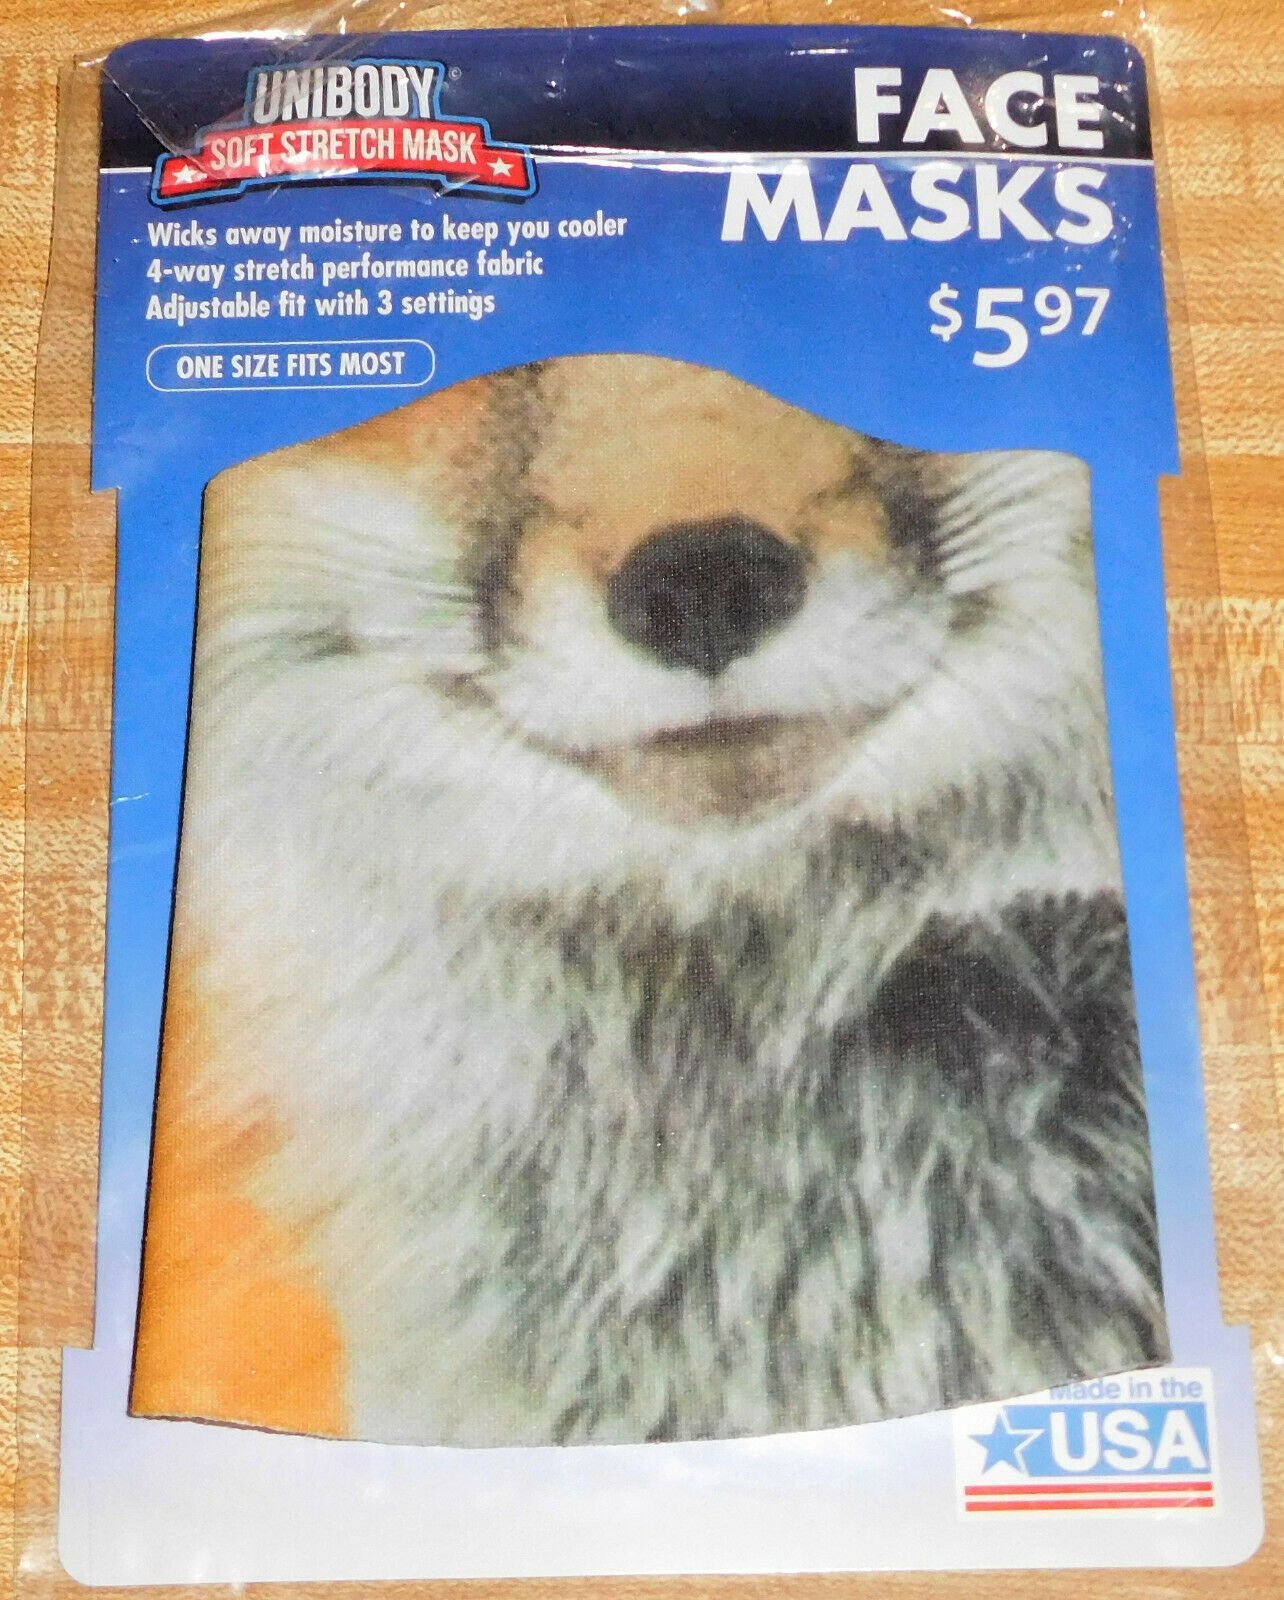 Fox Wildlife ½ Facial Face Mask New Never worn – for Kids' Play Dress up Costume